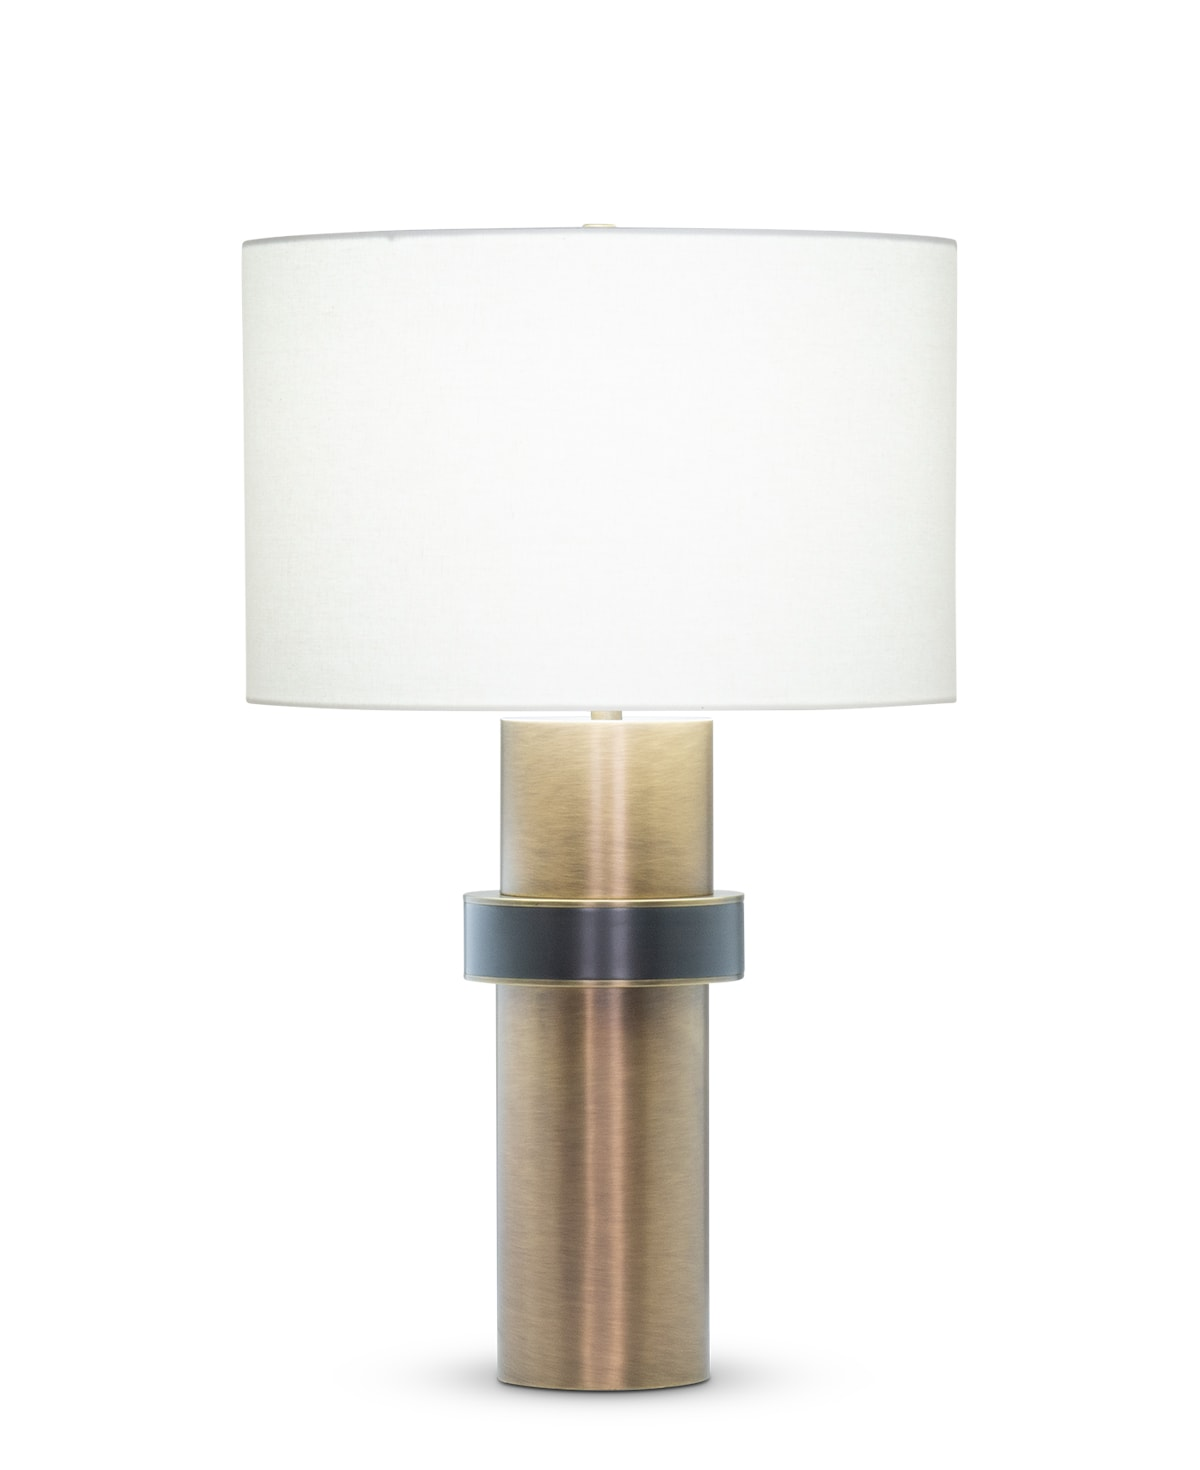 FlowDecor Carlton Table Lamp in metal with antique brass & gunmetal finishes and off-white linen drum shade (# 4530)